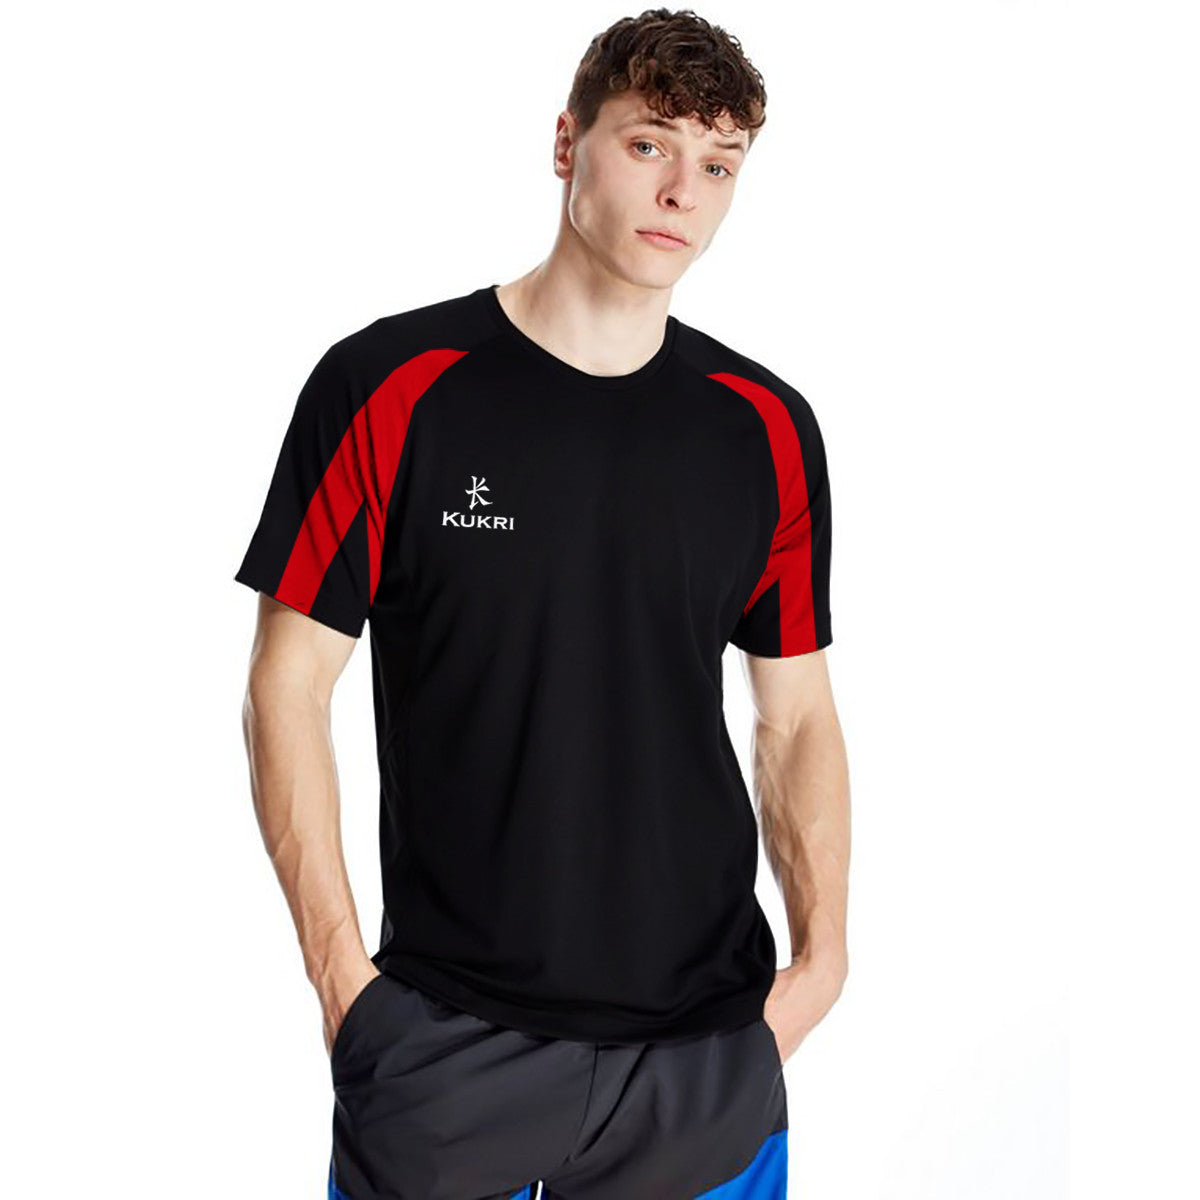 KUKRI Stylish Crew Neck T Shirt For Men- Black & Red -BE1062